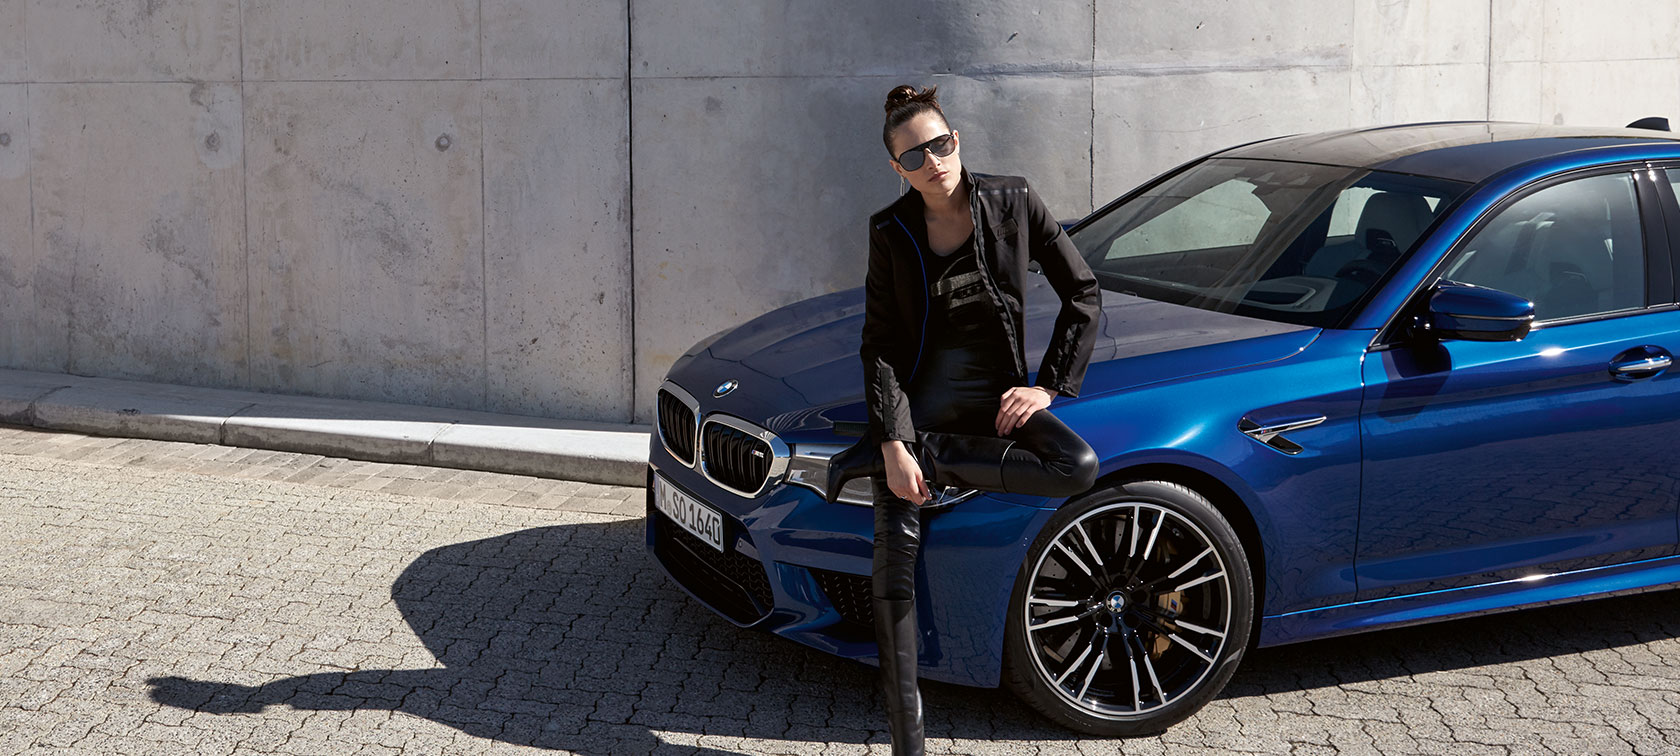 A cool-looking woman wearing articles from the BMW M Collection stands in front of a blue BMW.